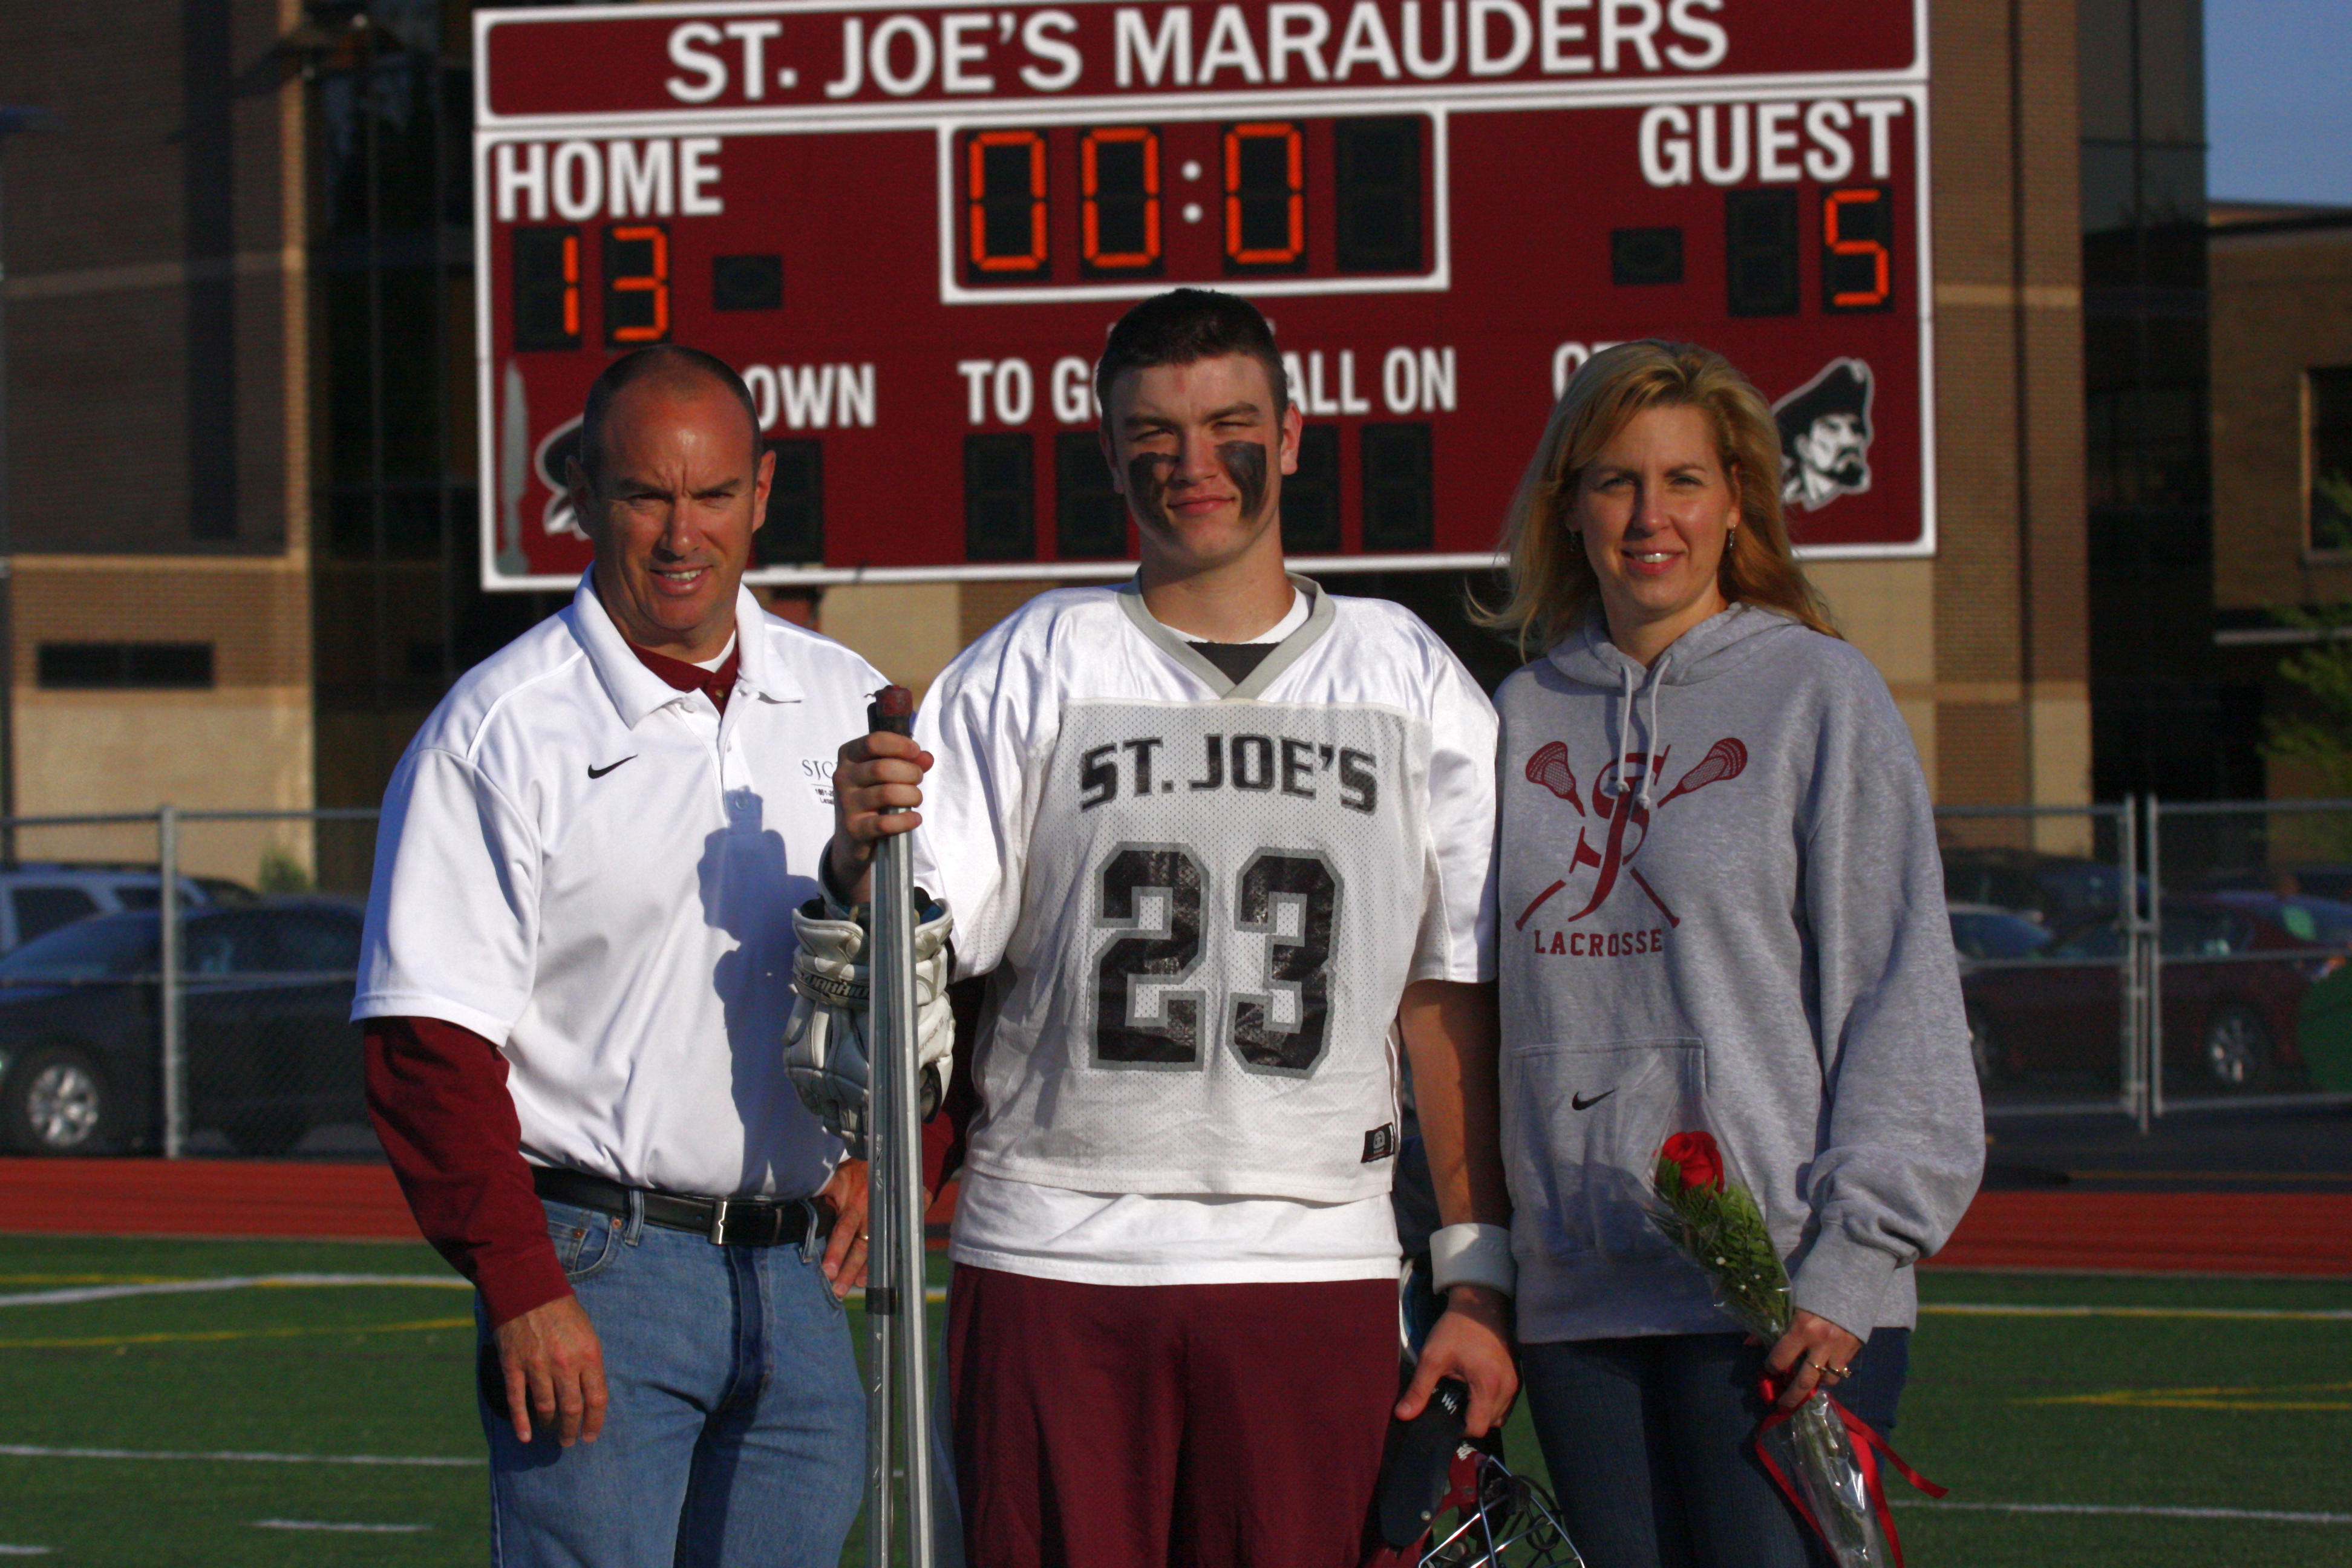 Paul Sr. and Denise Englert flank their son, Paul Jr., who played varsity lacrosse for four years at St. Joseph's Collegiate Institute and died in September 2013 from a pulmonary embolism.